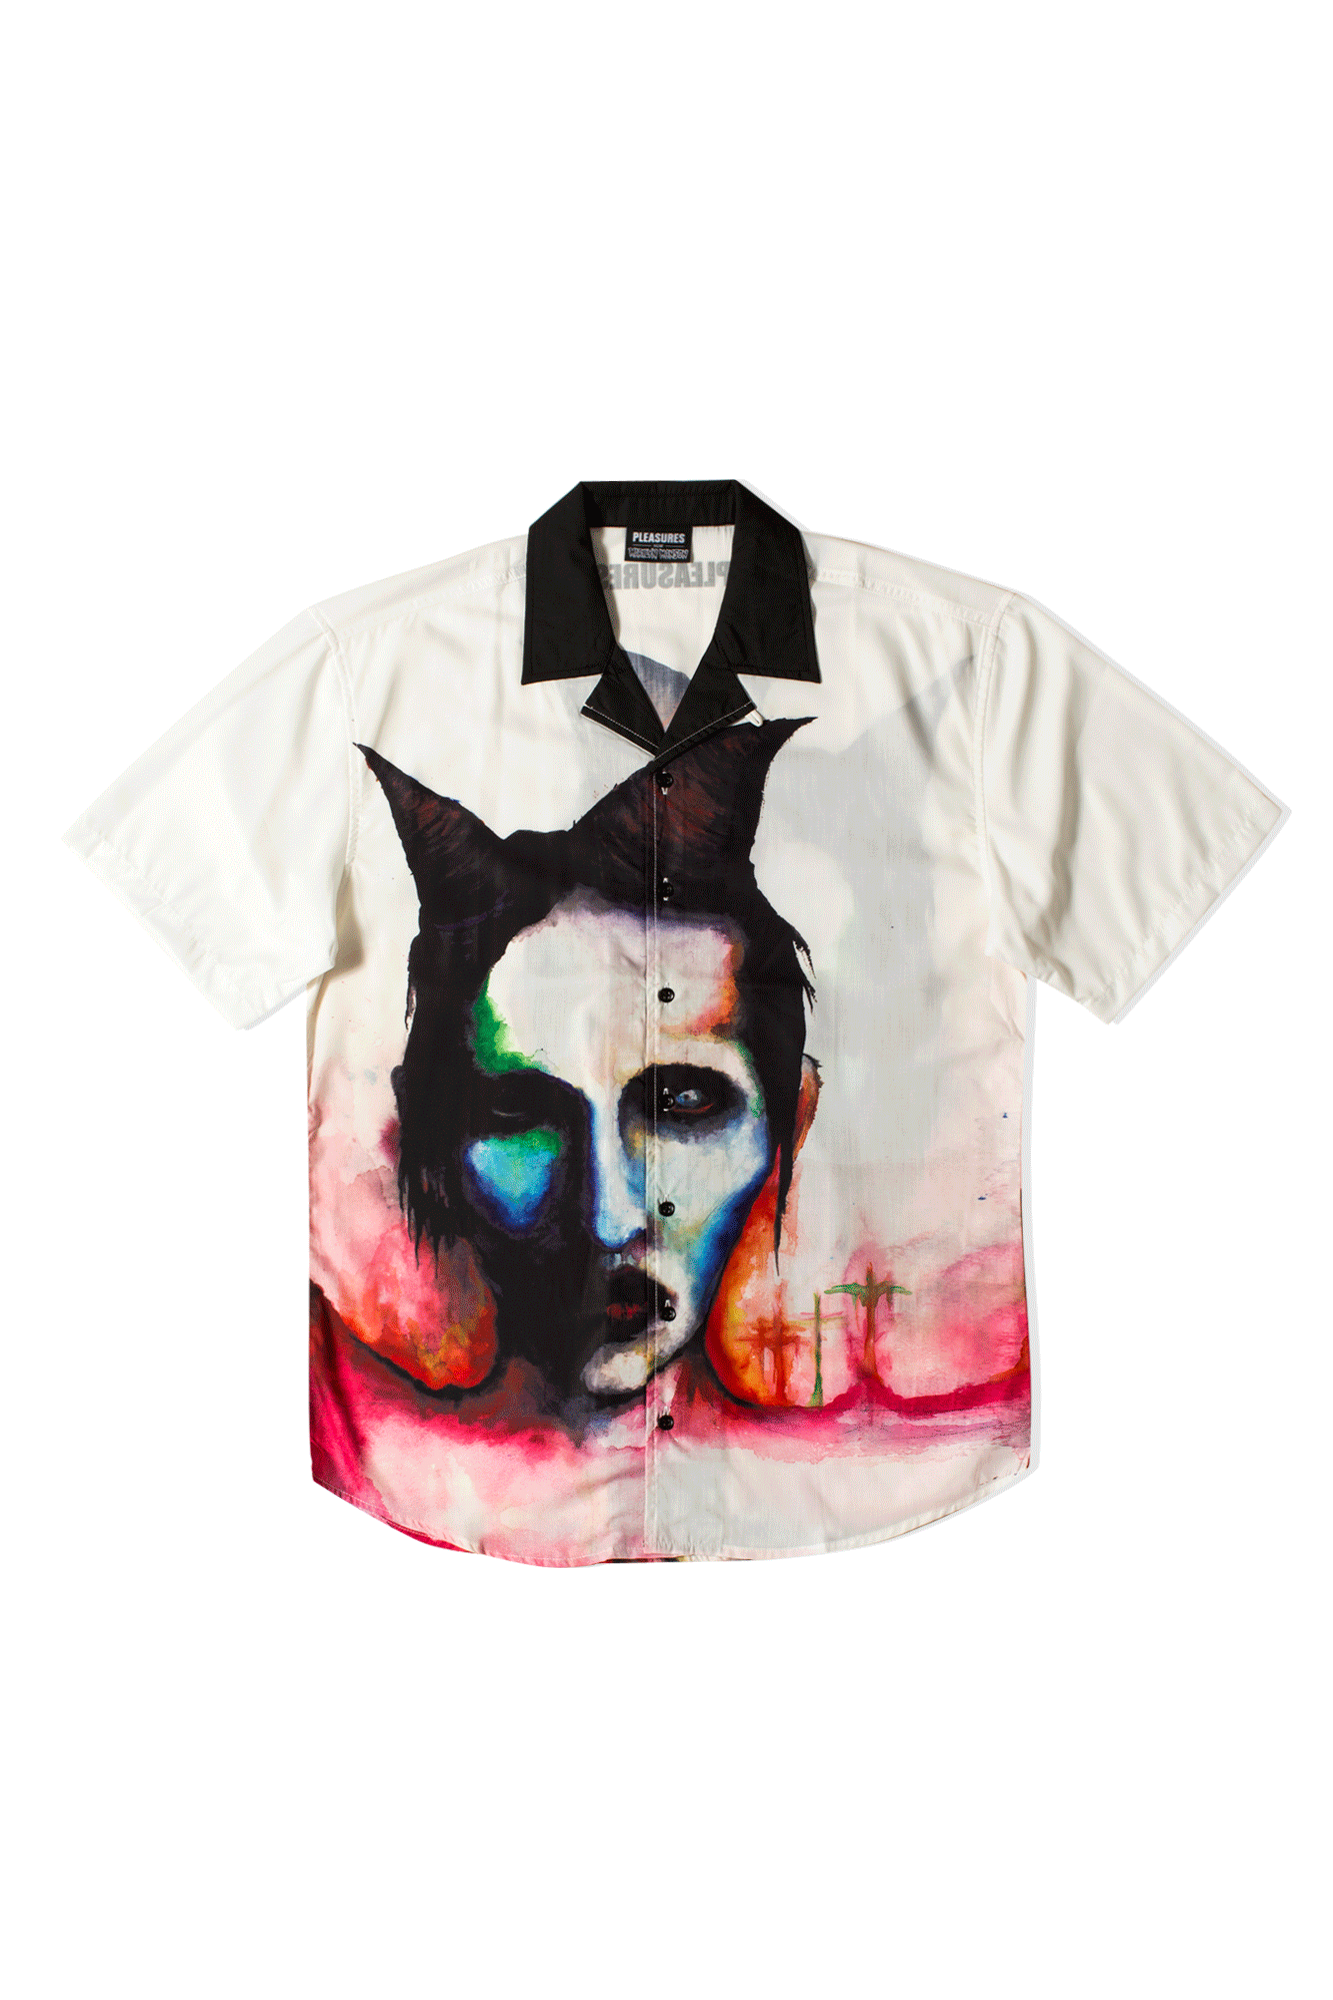 Watercolor Camp Shirt x Marilyn Manson Nero